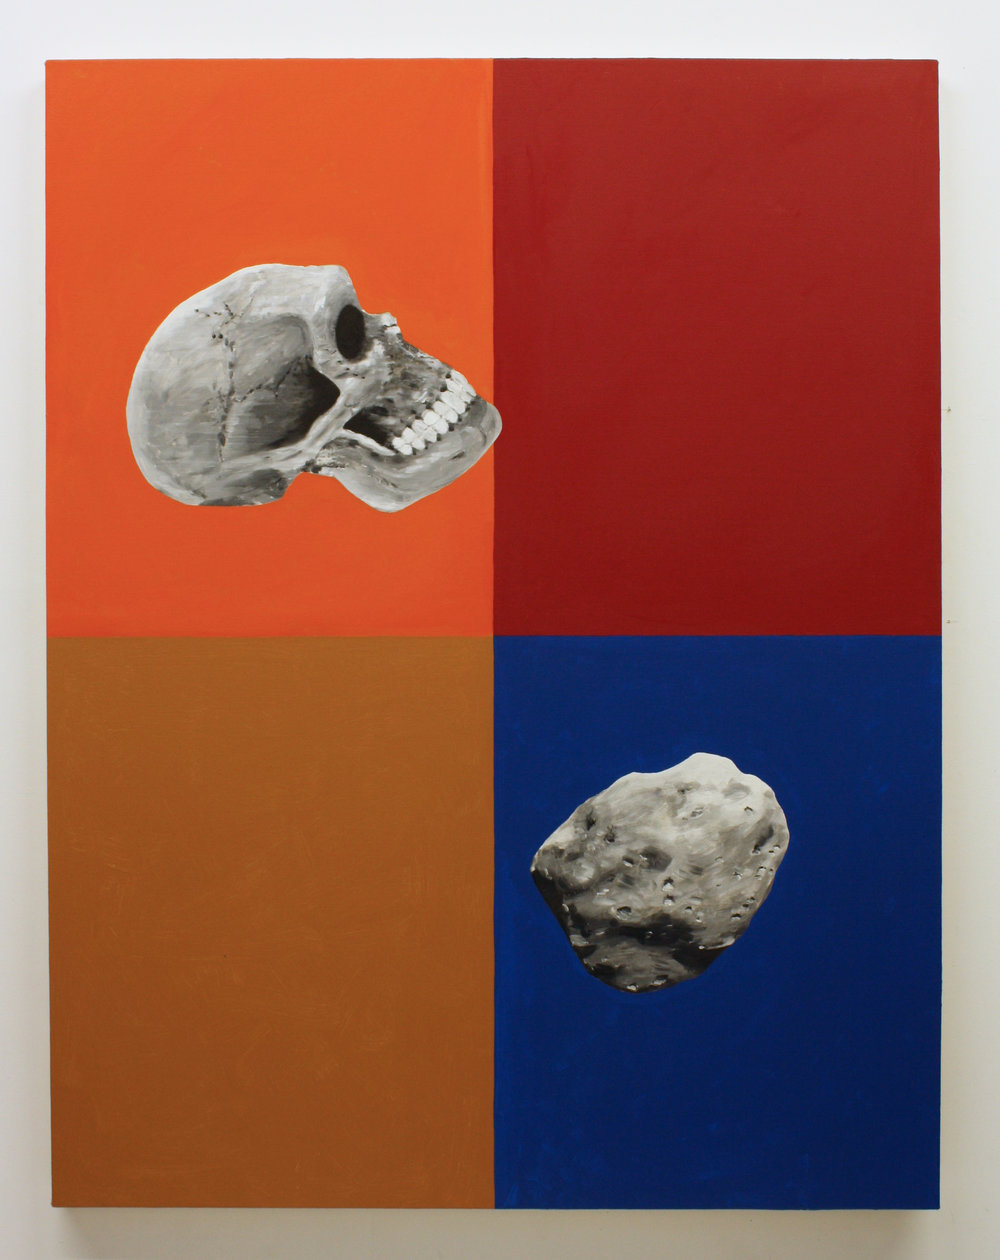 """Untitled, (Skull and Asteroid)"", 2017 , oil on canvas, 60 x 46 inches"